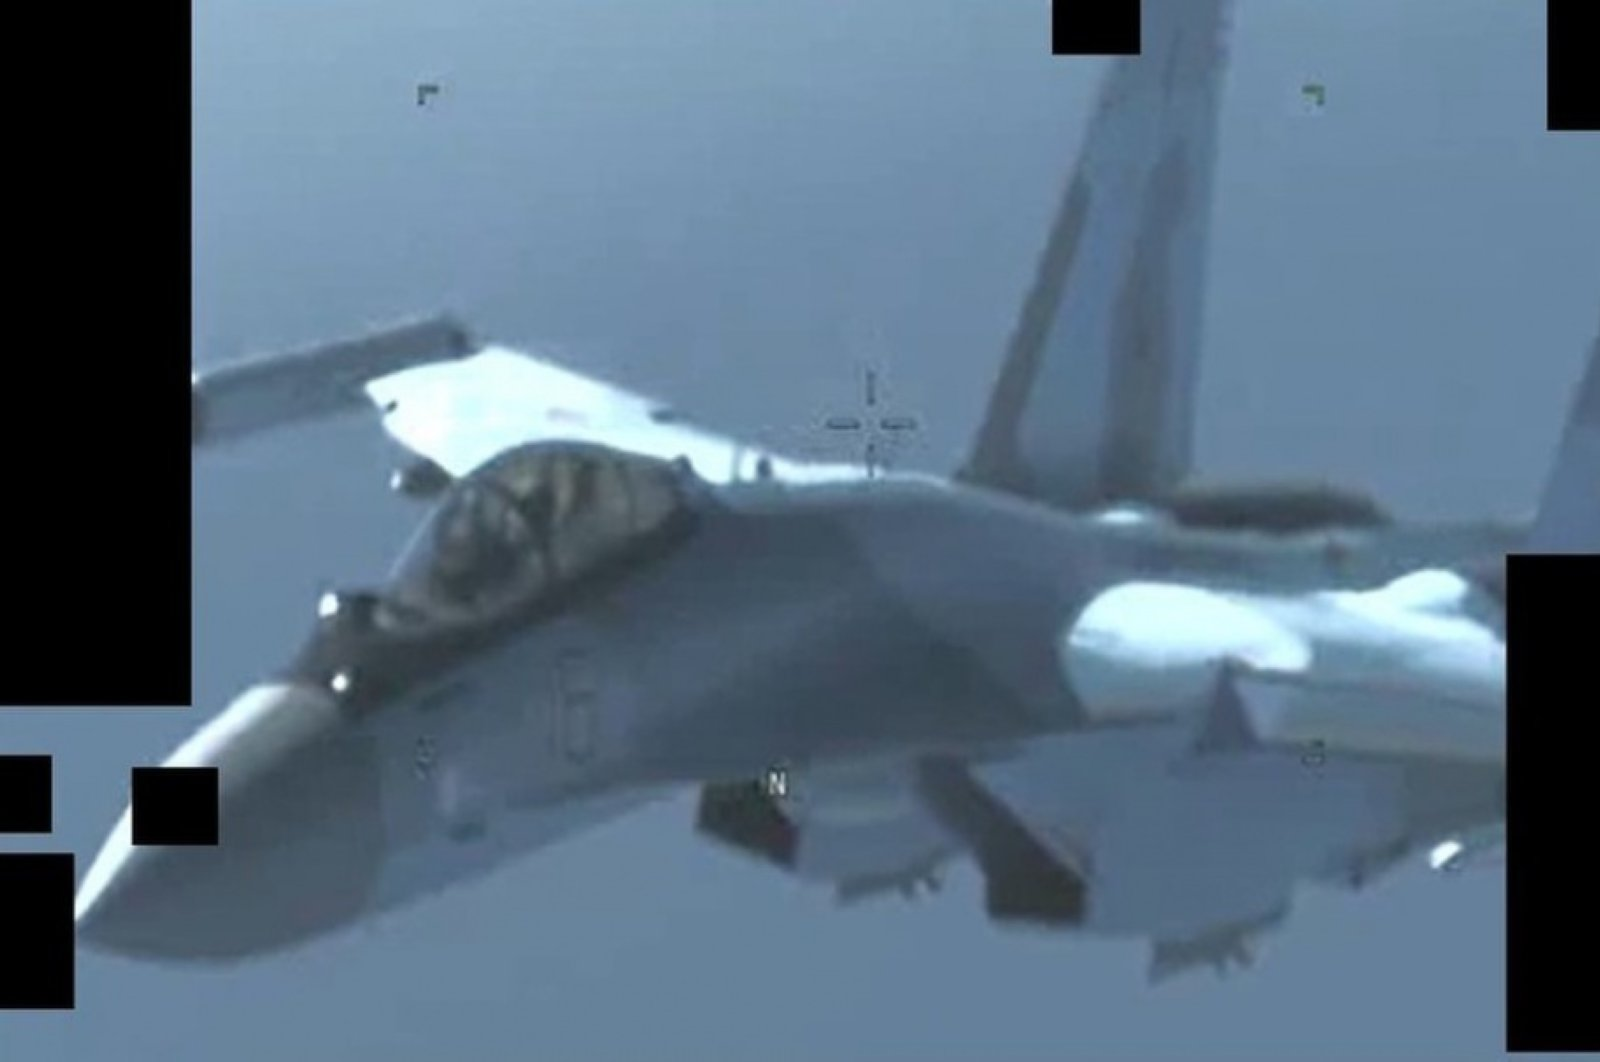 An image released by the U.S. Africa Command, which it says shows one of the MiGs that flew to Libya, May 26, 2020. (U.S. Africa Command)